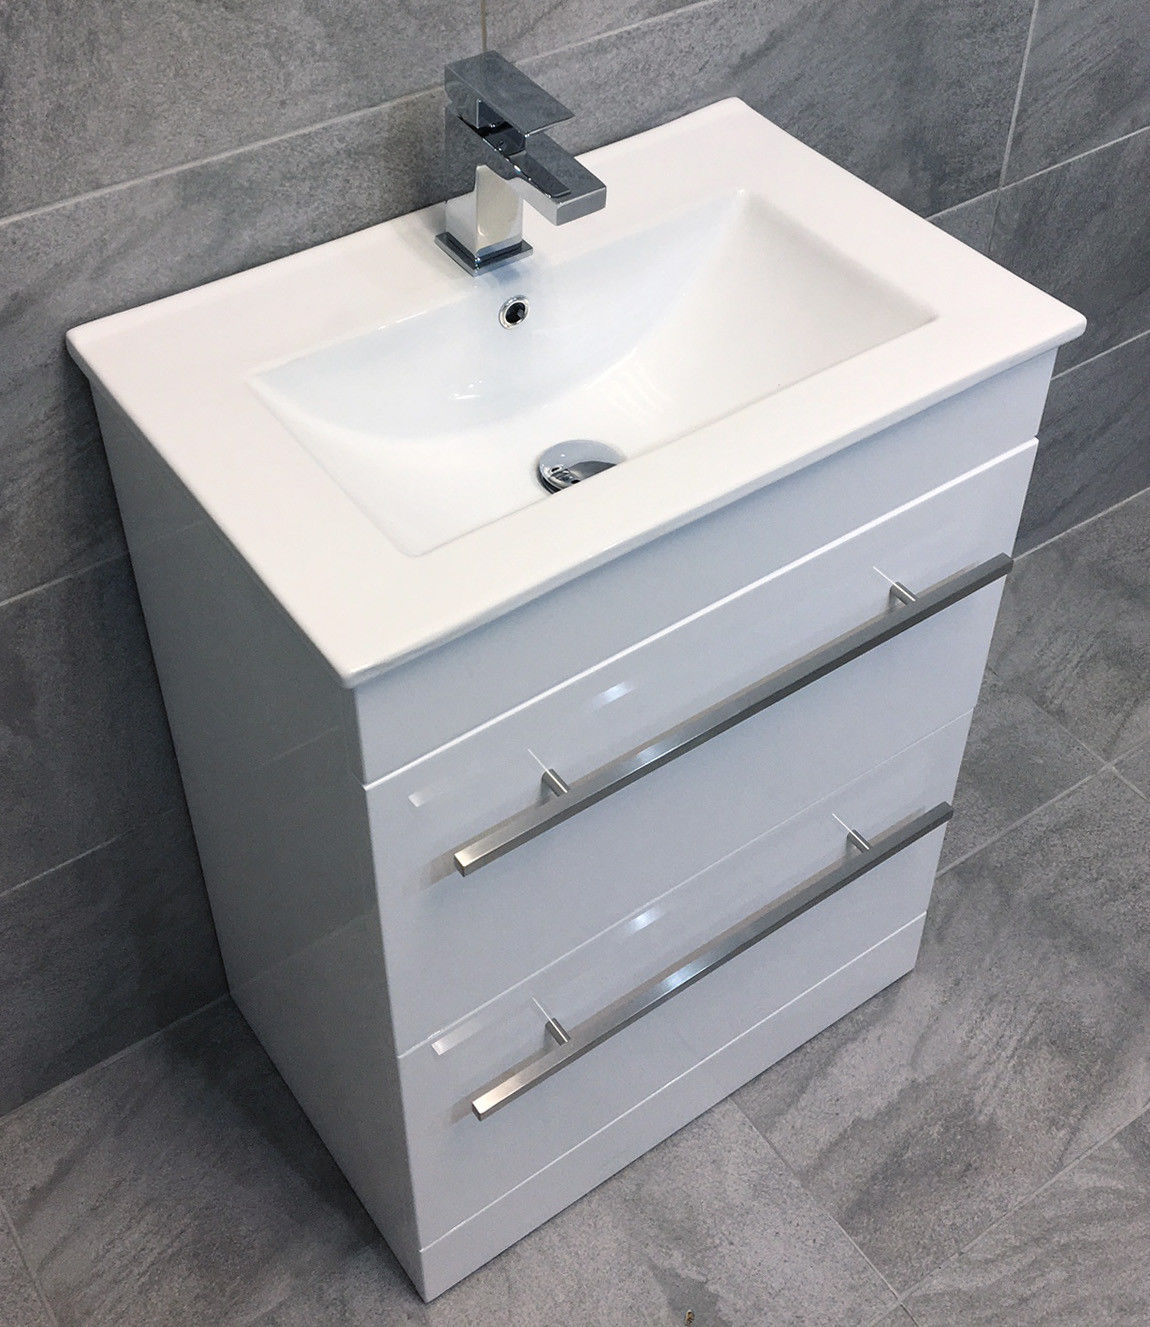 Savu 600mm Square Vanity Unit & Ceramic Basin Sink Unit Bathroom Drawer + Tap